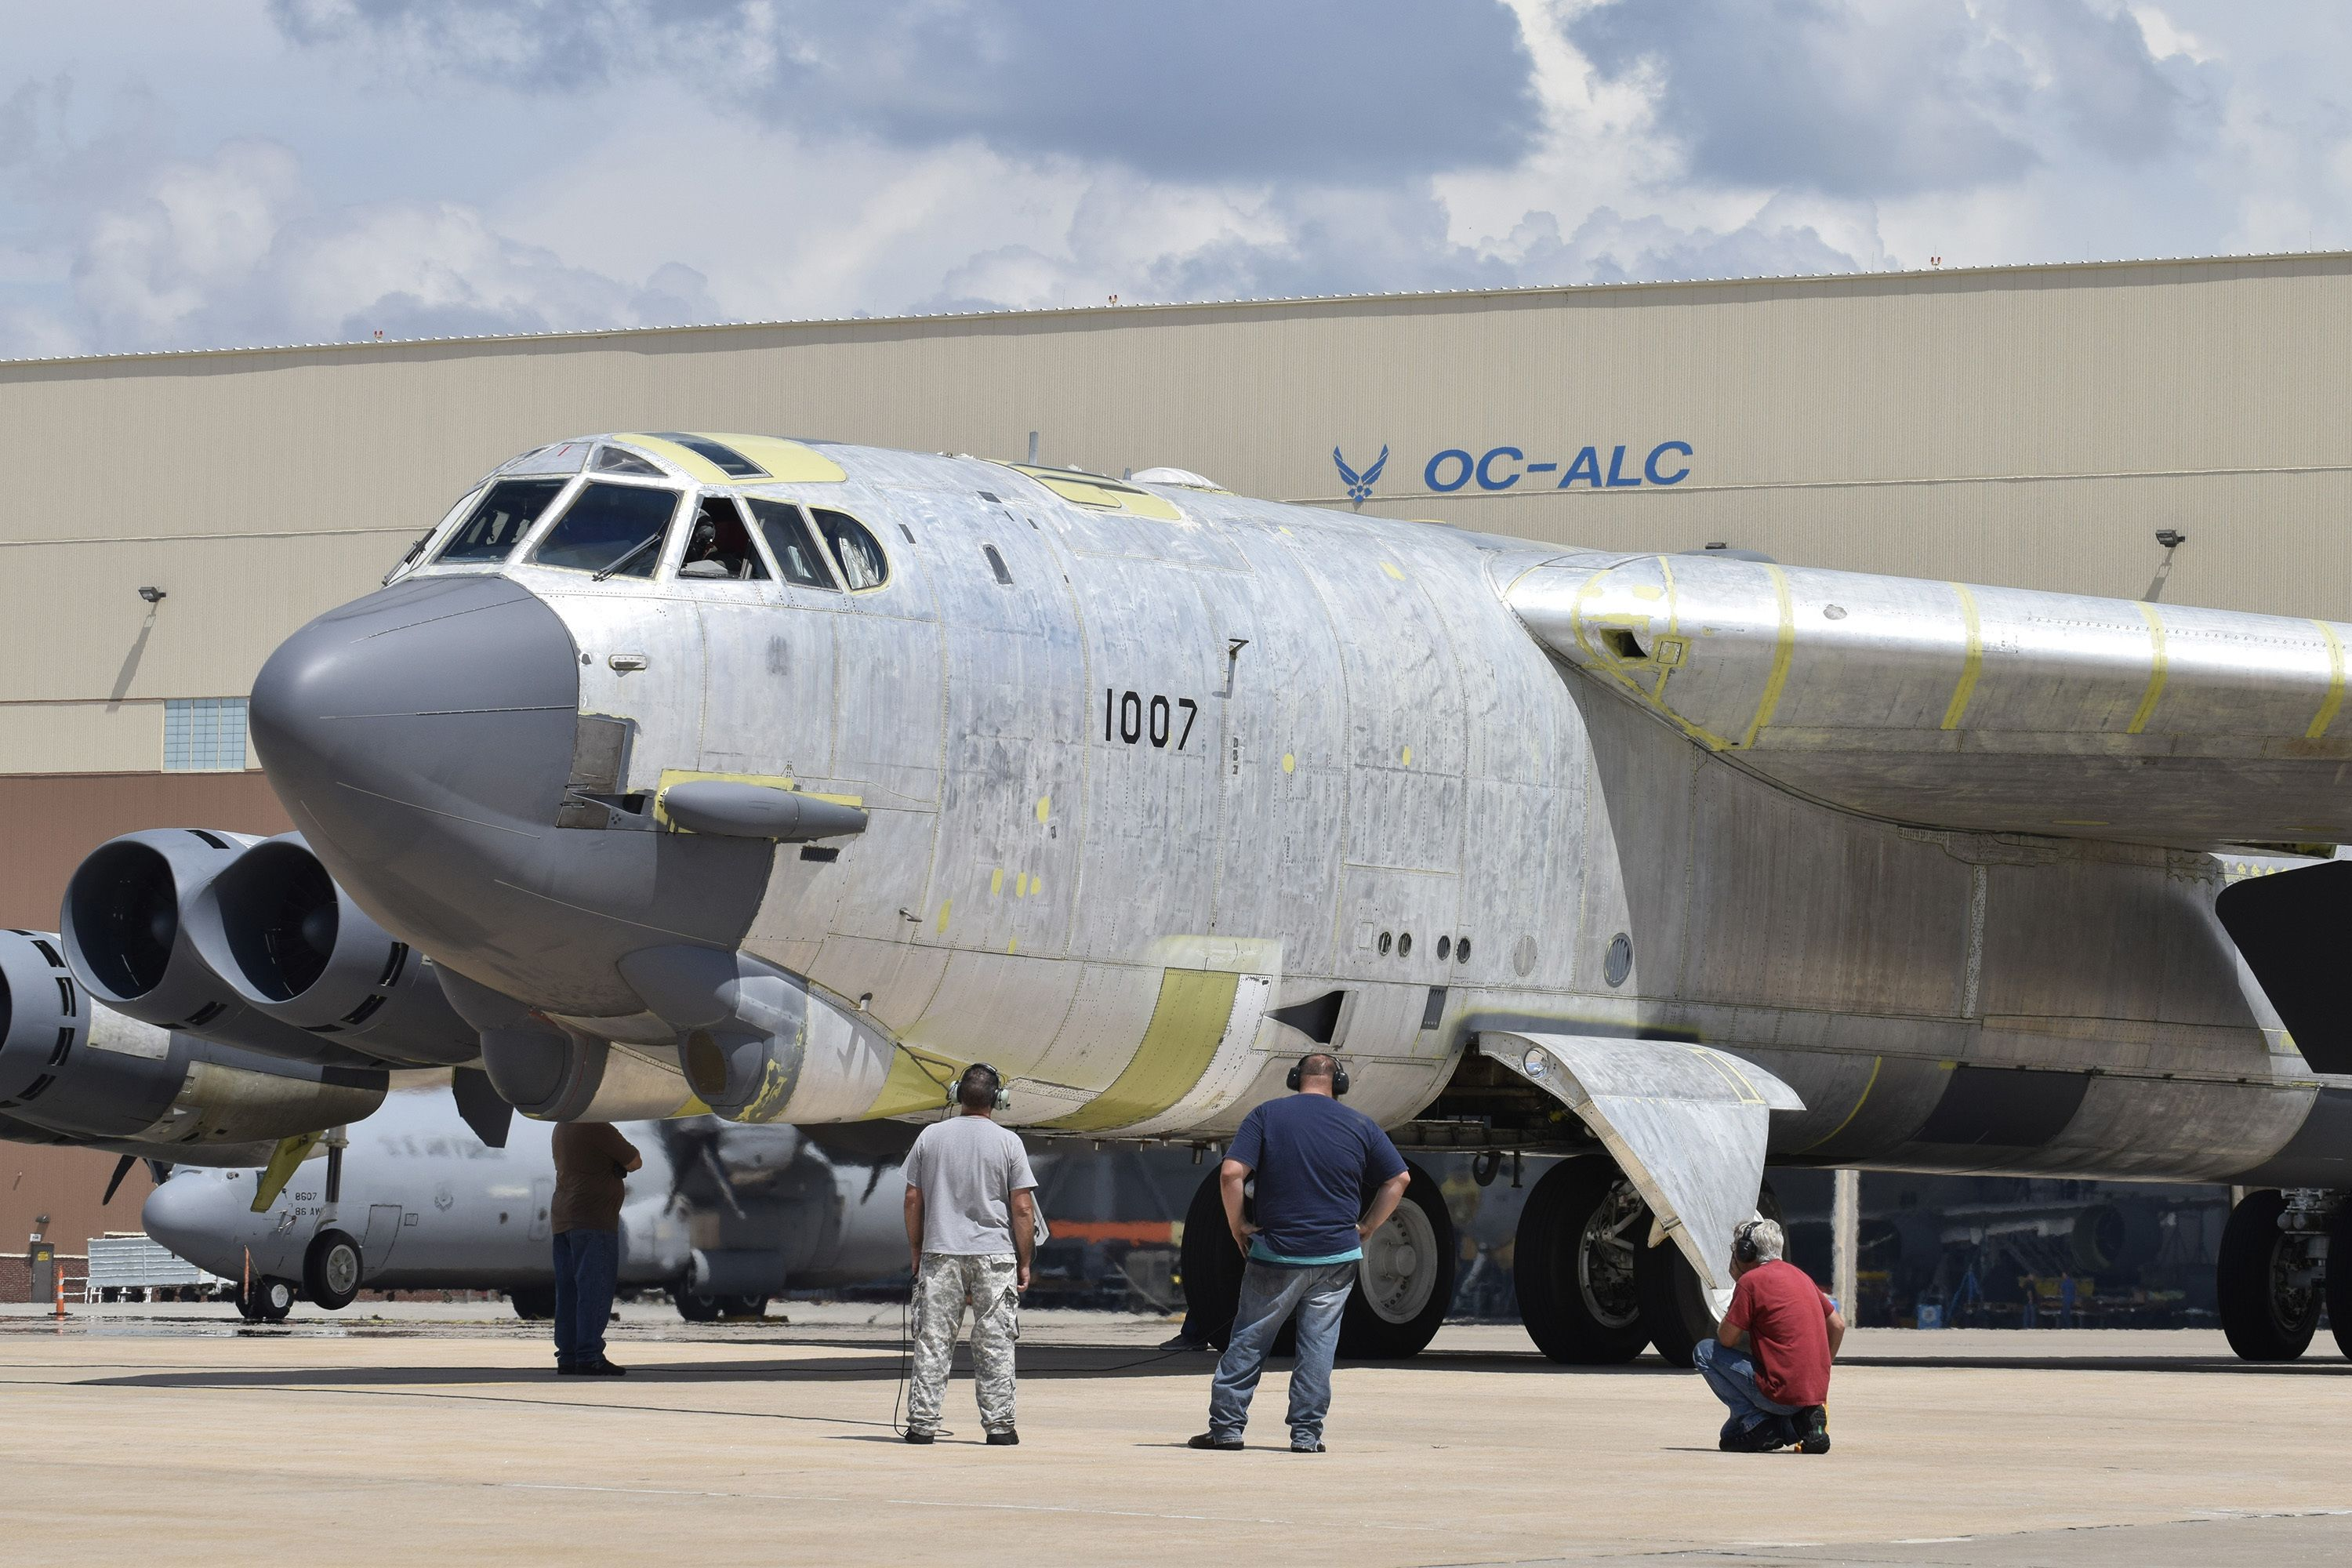 B52H 'Ghostrider' being brought back into service from